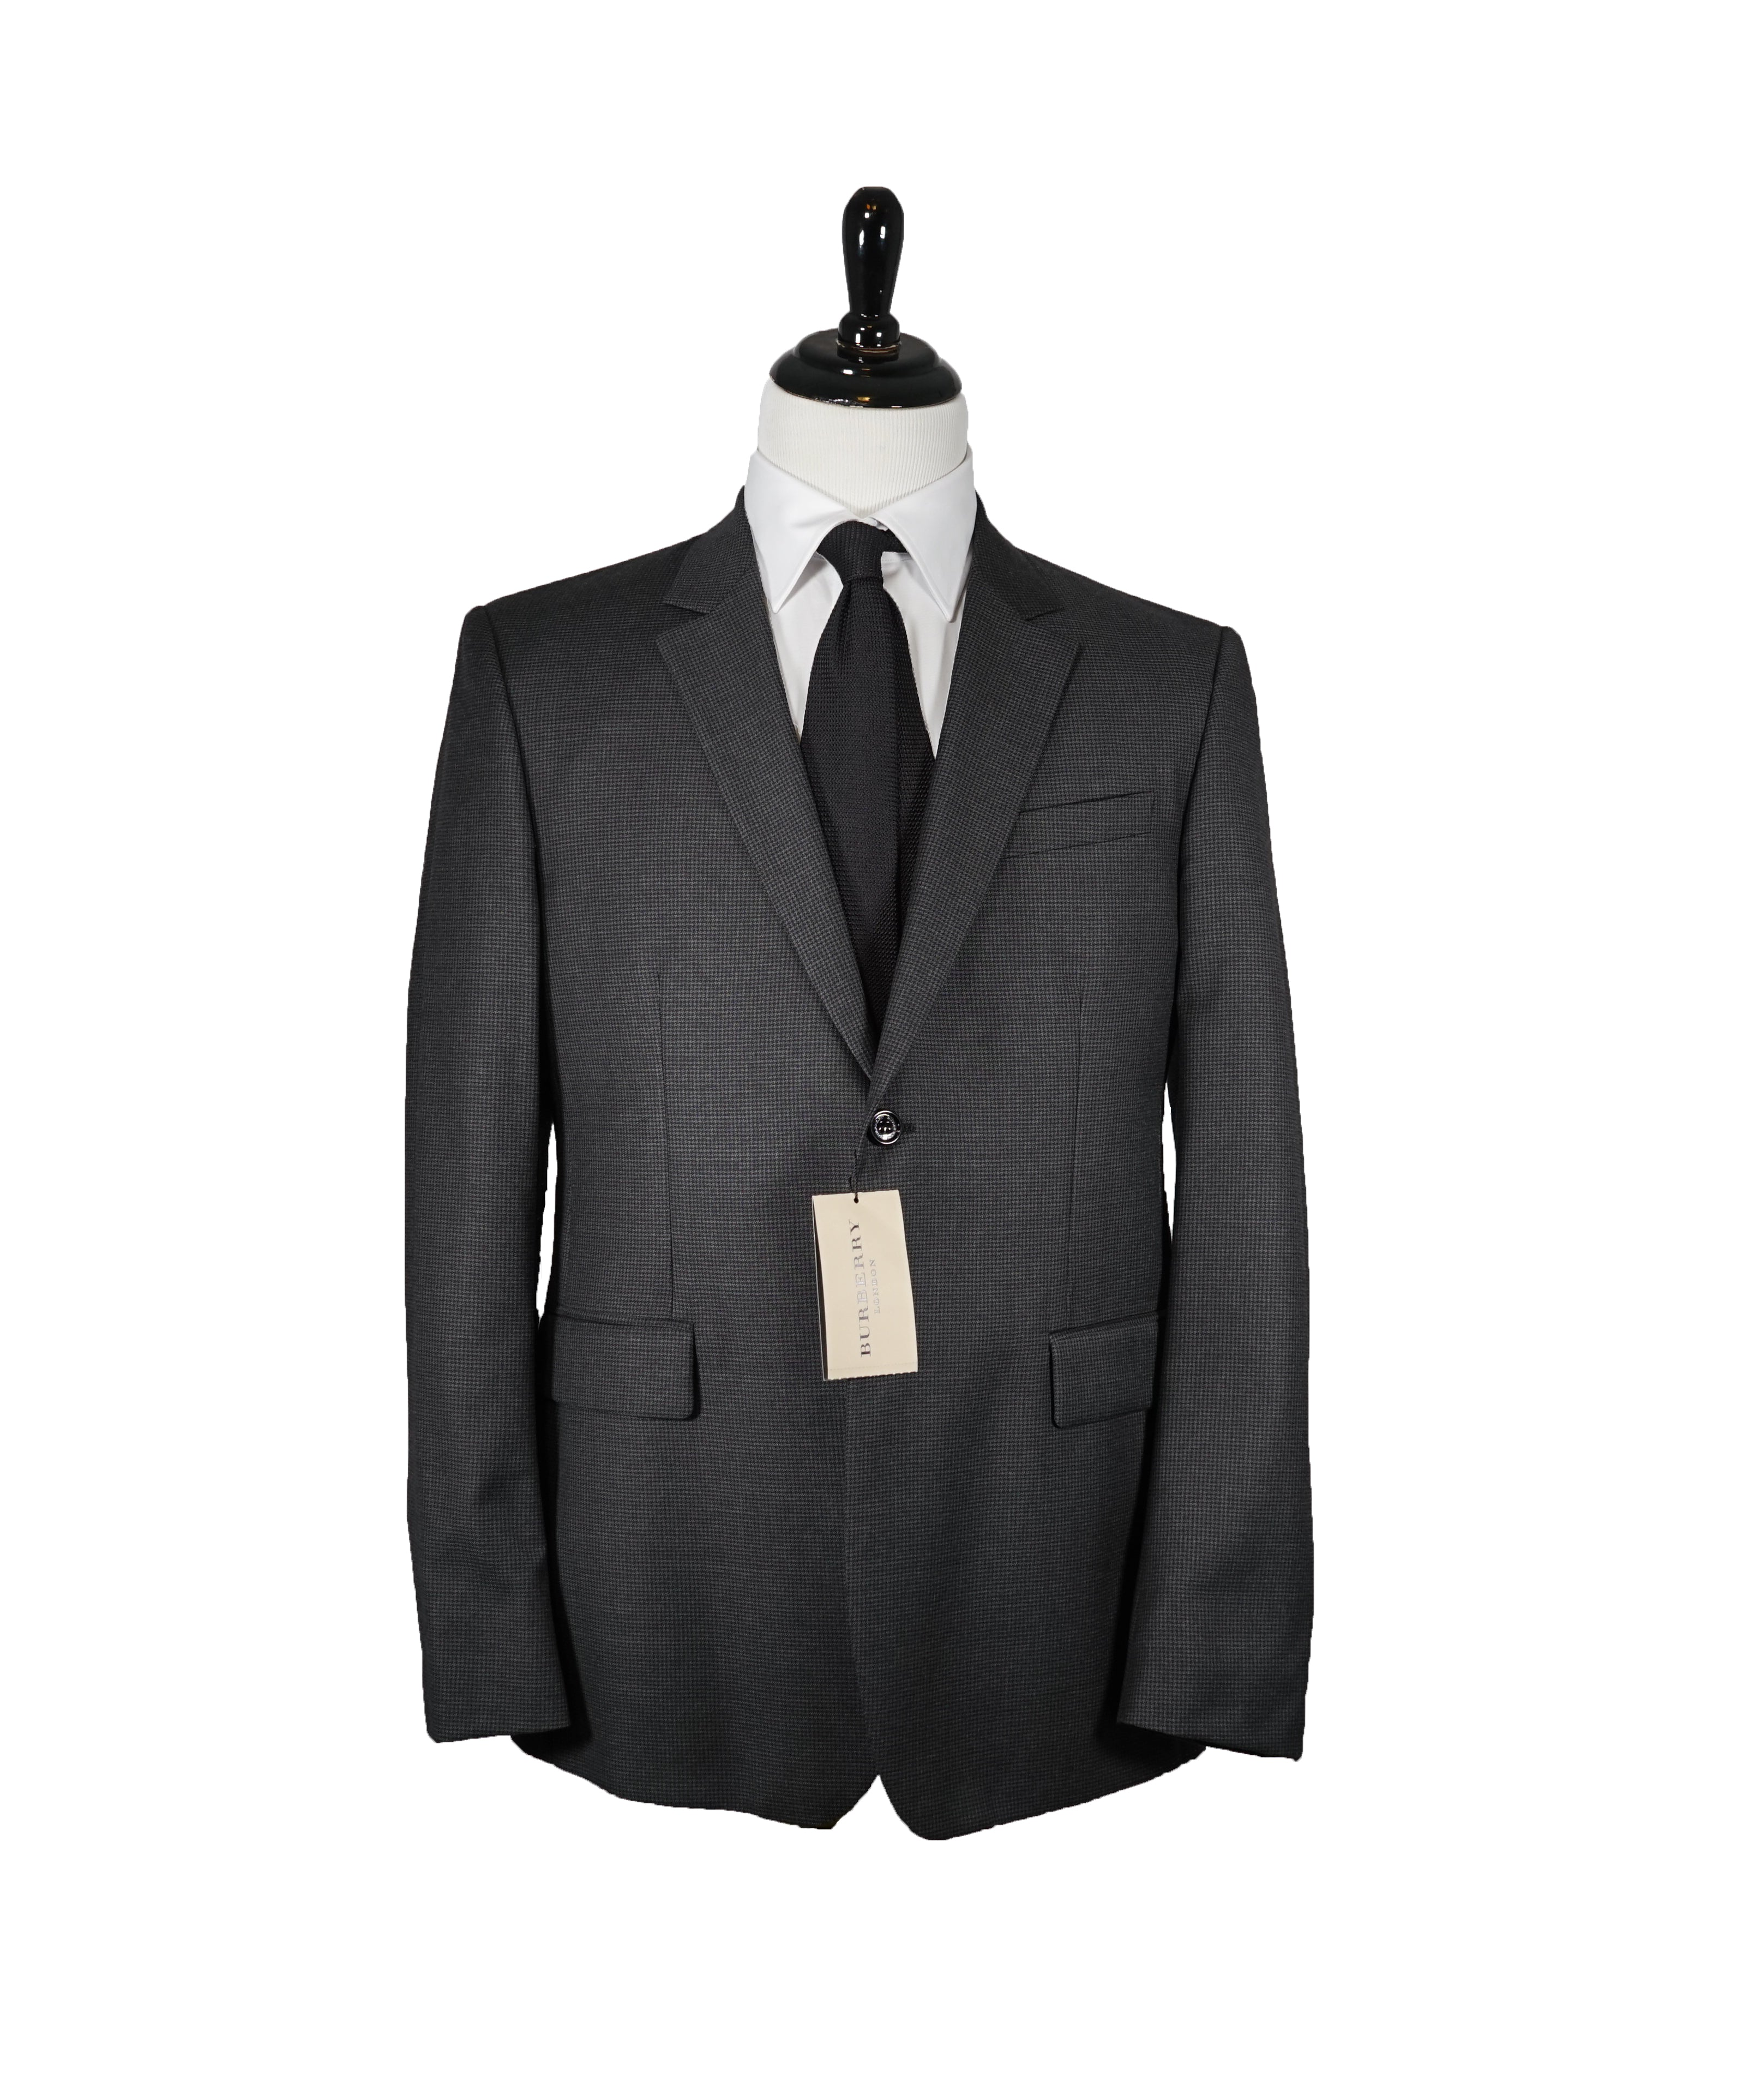 681660535854 BURBERRY LONDON - Houndstooth Gray Black Suit - 44R – Luxe Hanger